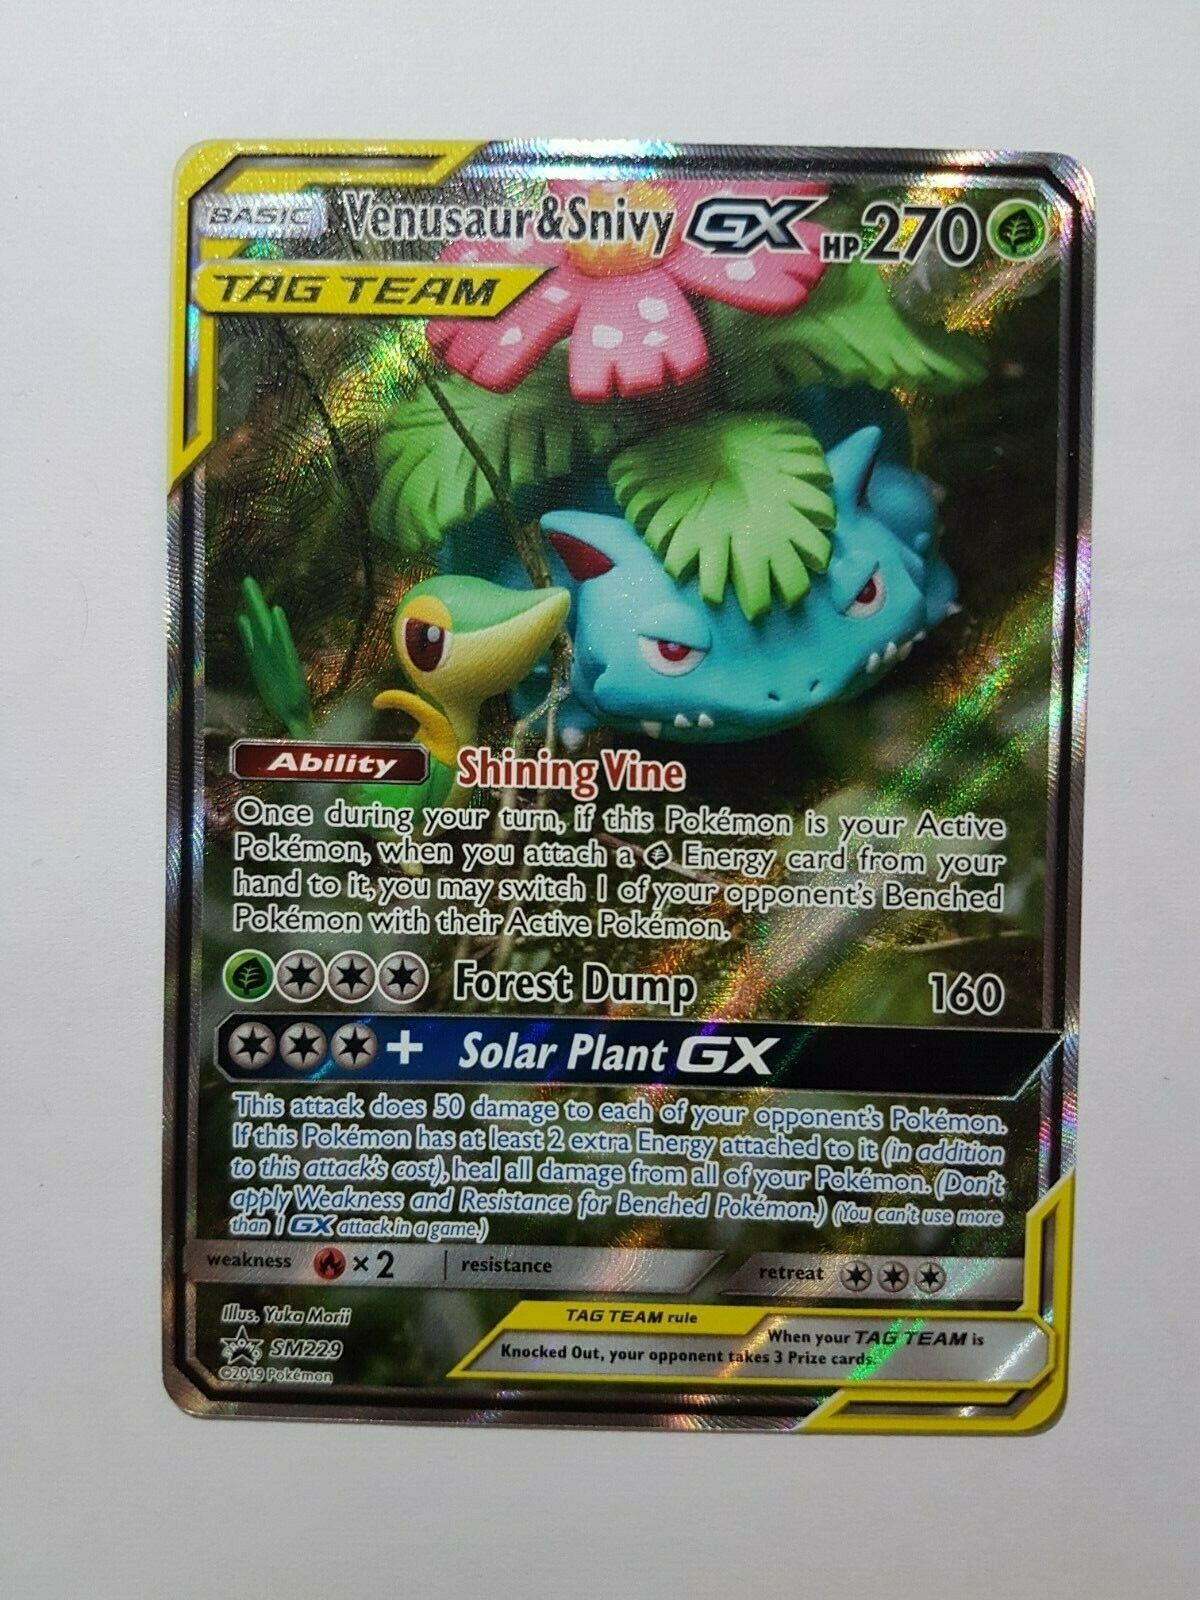 1 x Pokemon Venusaur /& Snivy GX SM Black Star Promo Sun /& Moon—Black S SM229